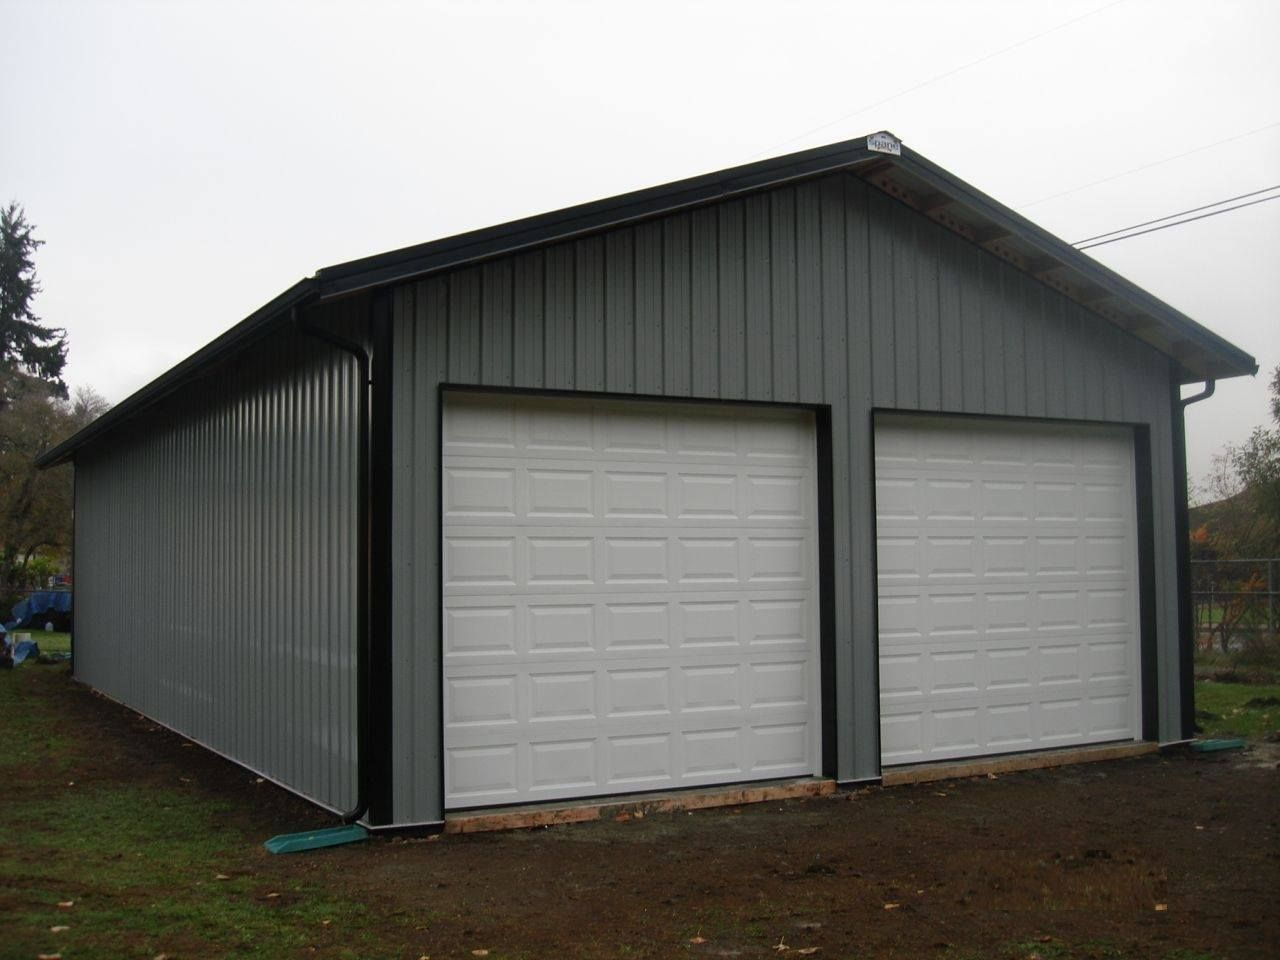 Two-bay garage in Tacoma, WA. Constructed by Spane Buildings of Mount Vernon, WA.